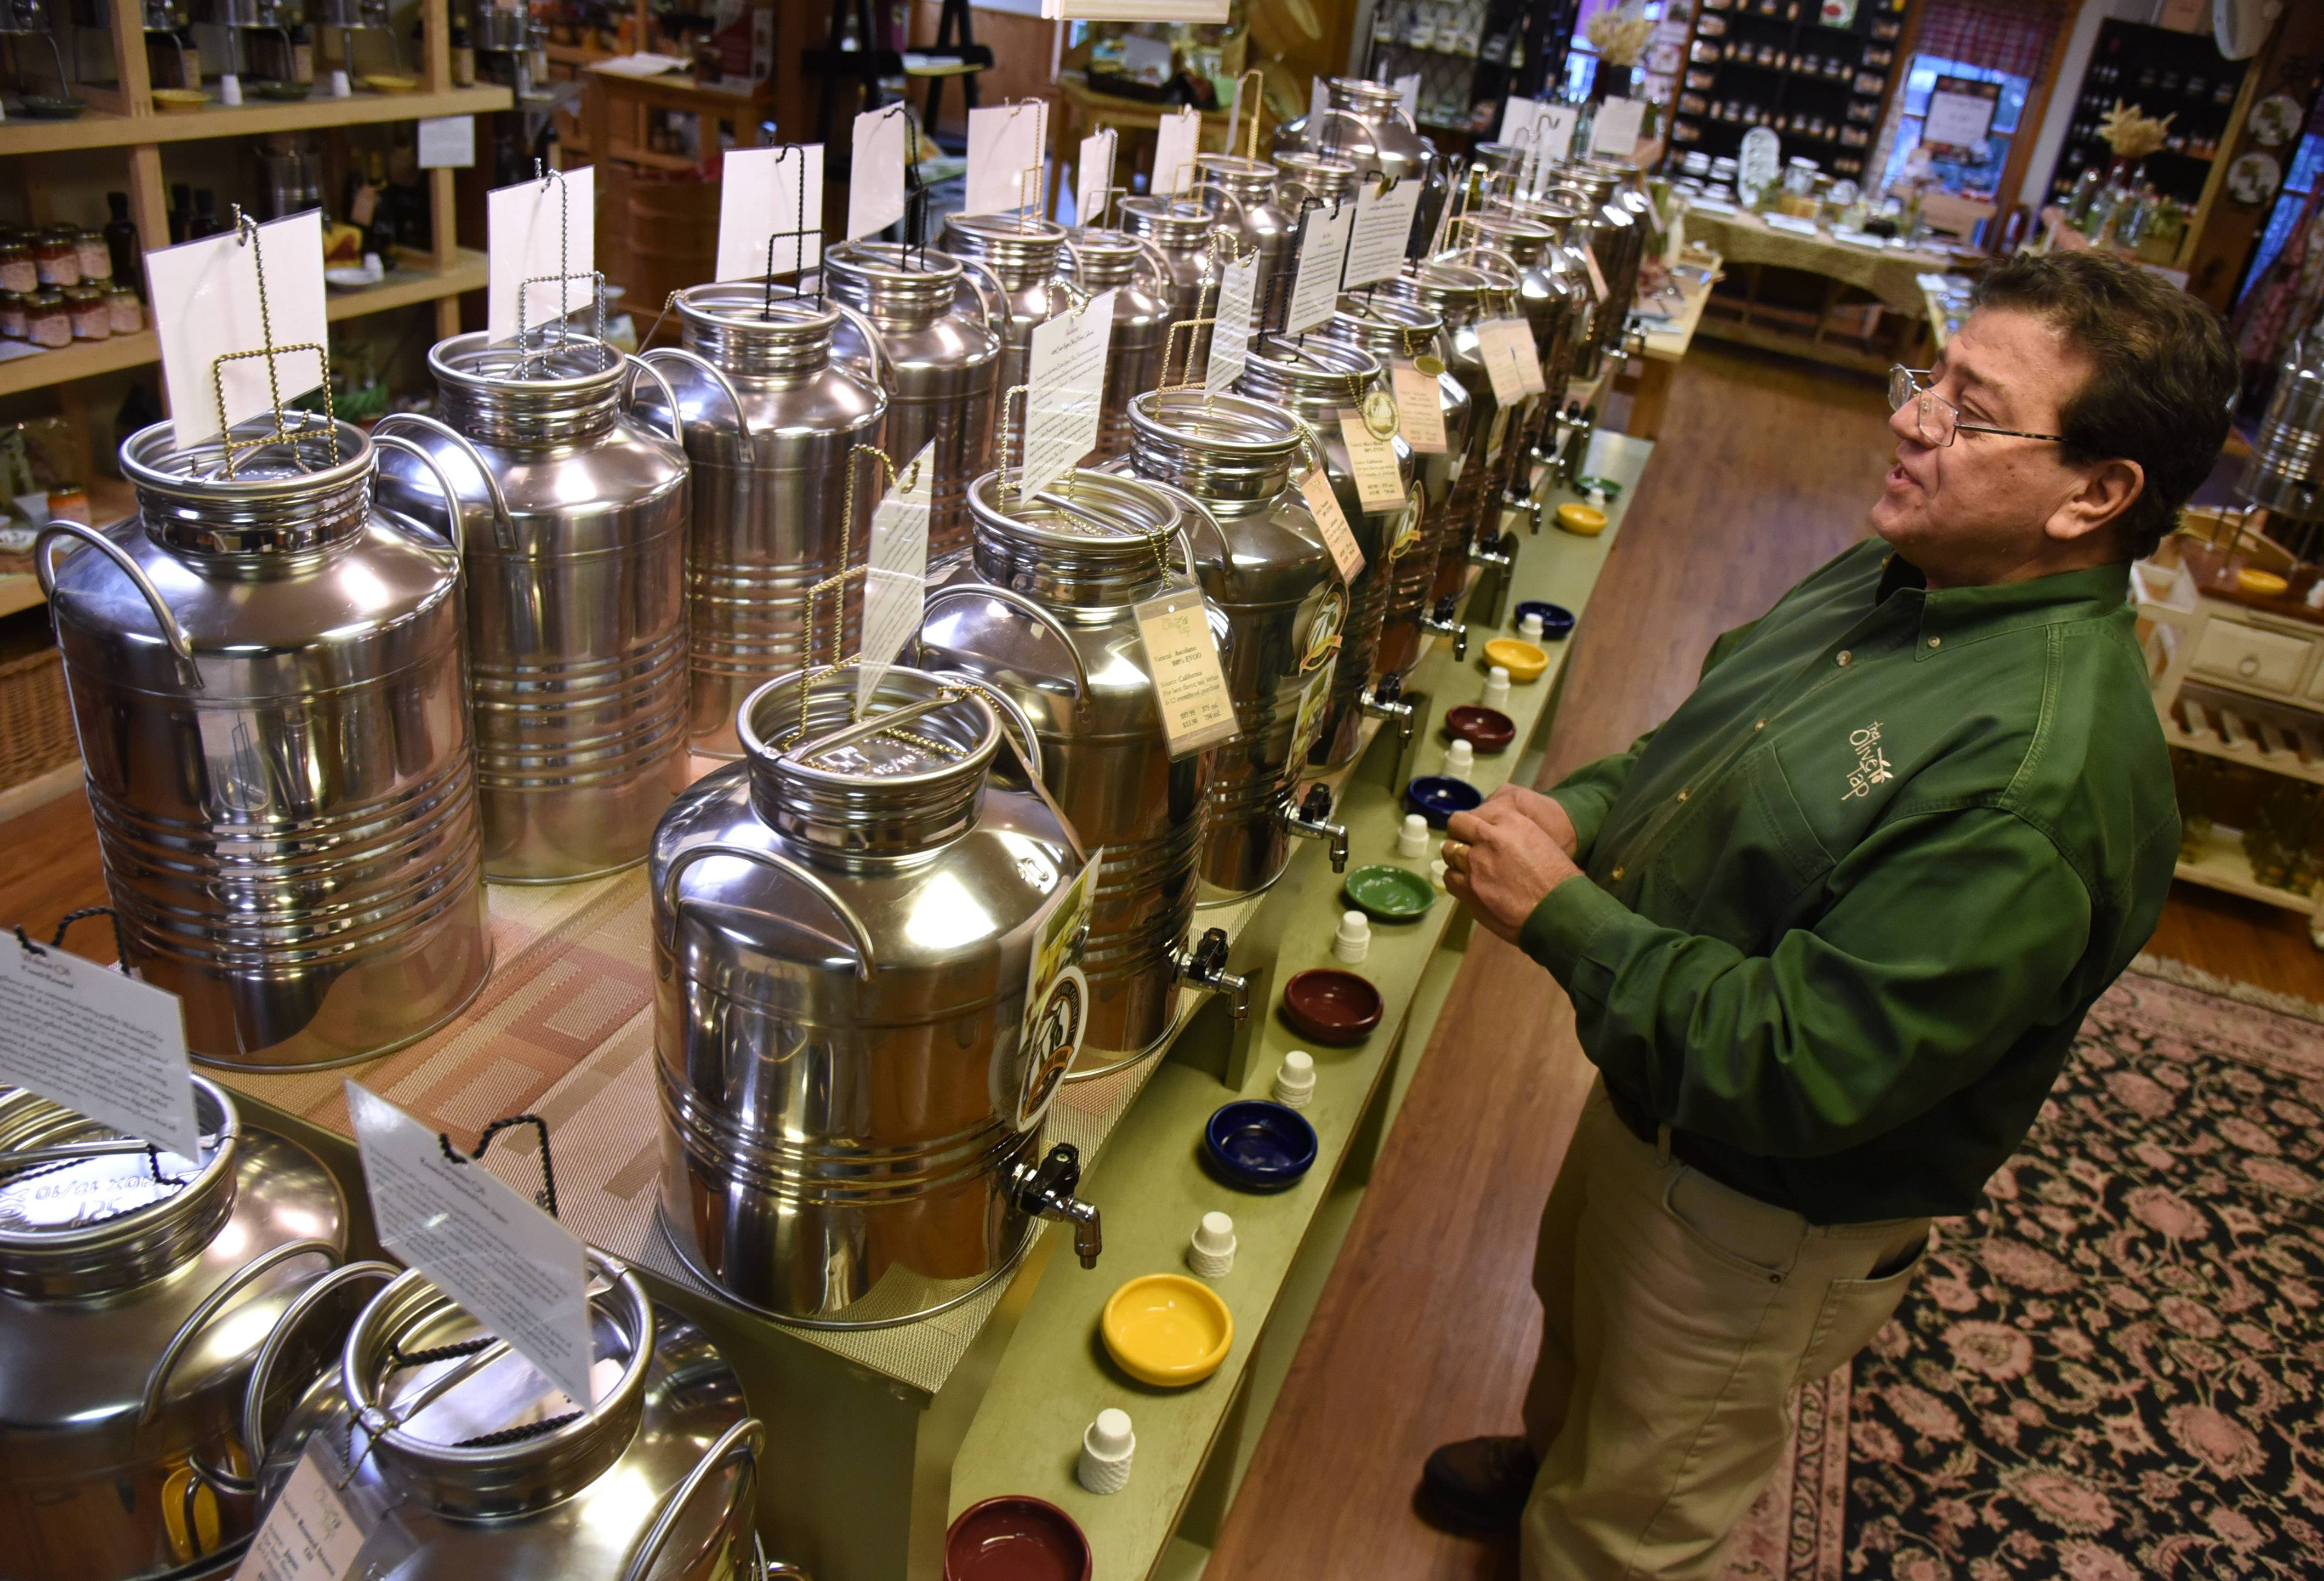 The Olive Tap owner Rick Petrocelly looks over tanks of oil in his Long Grove store. He said the olive shortage in Europe could lead to some modest price increases.